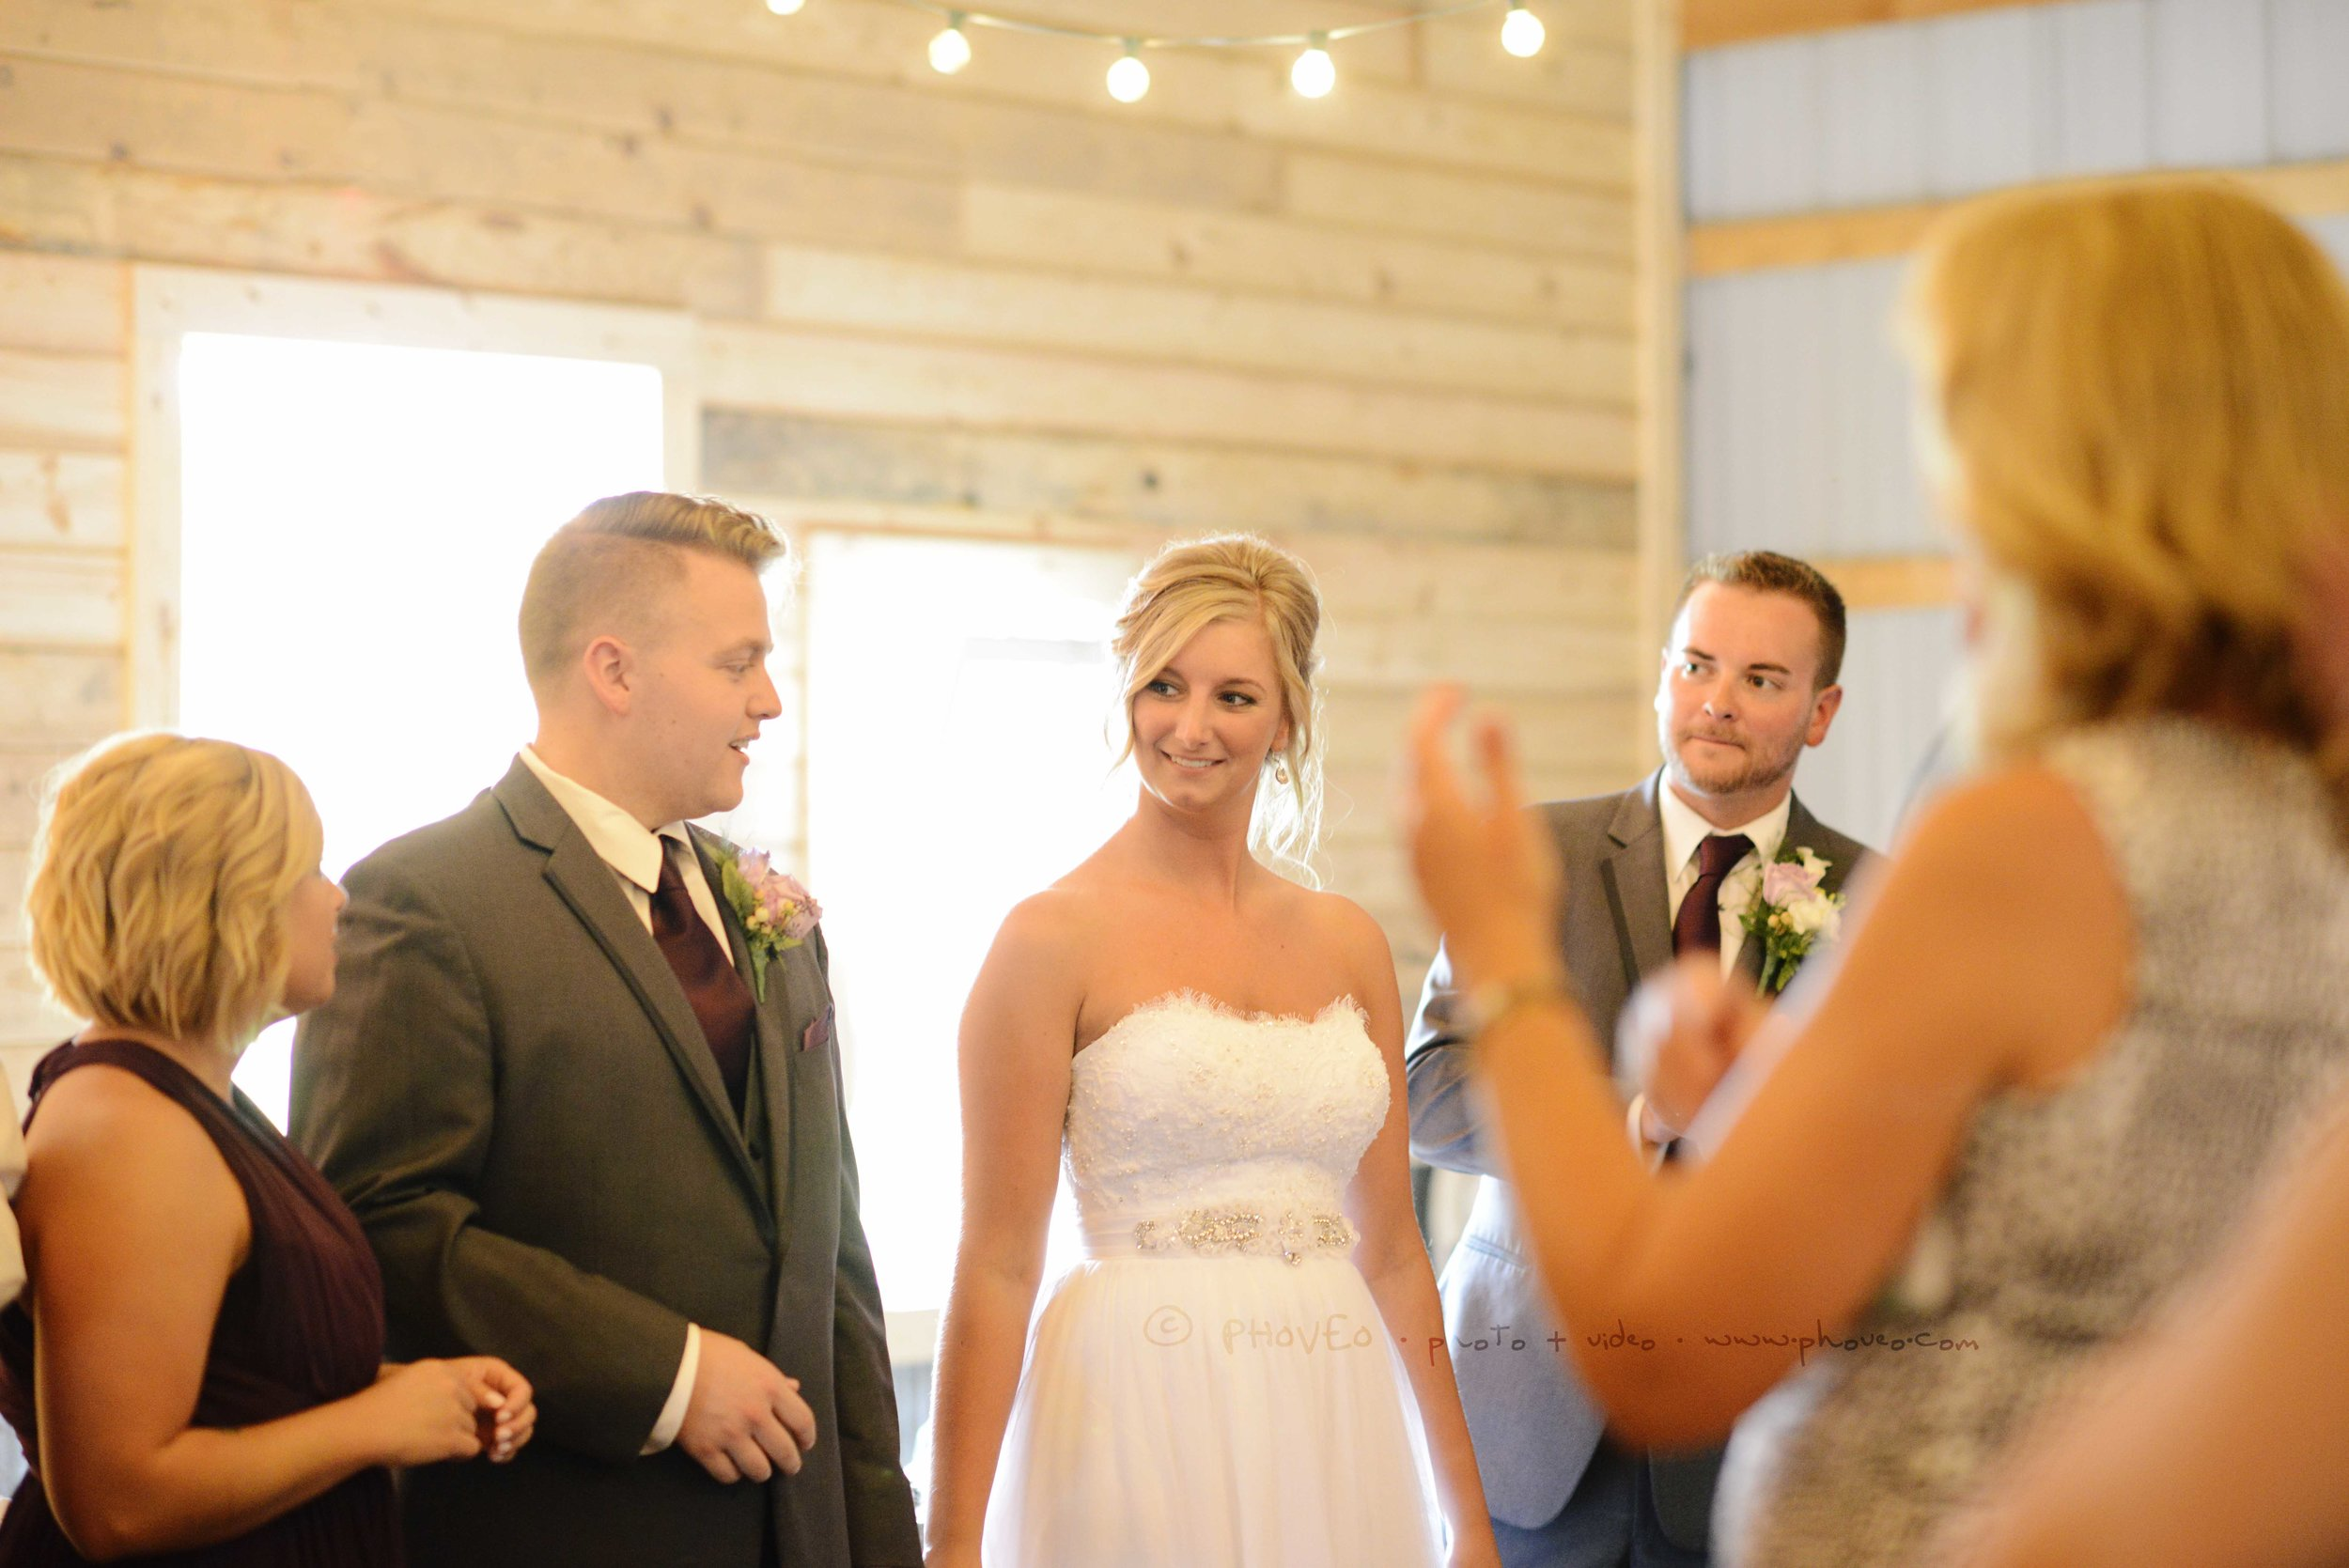 WM_20160826_Katelyn+Tony_84.jpg